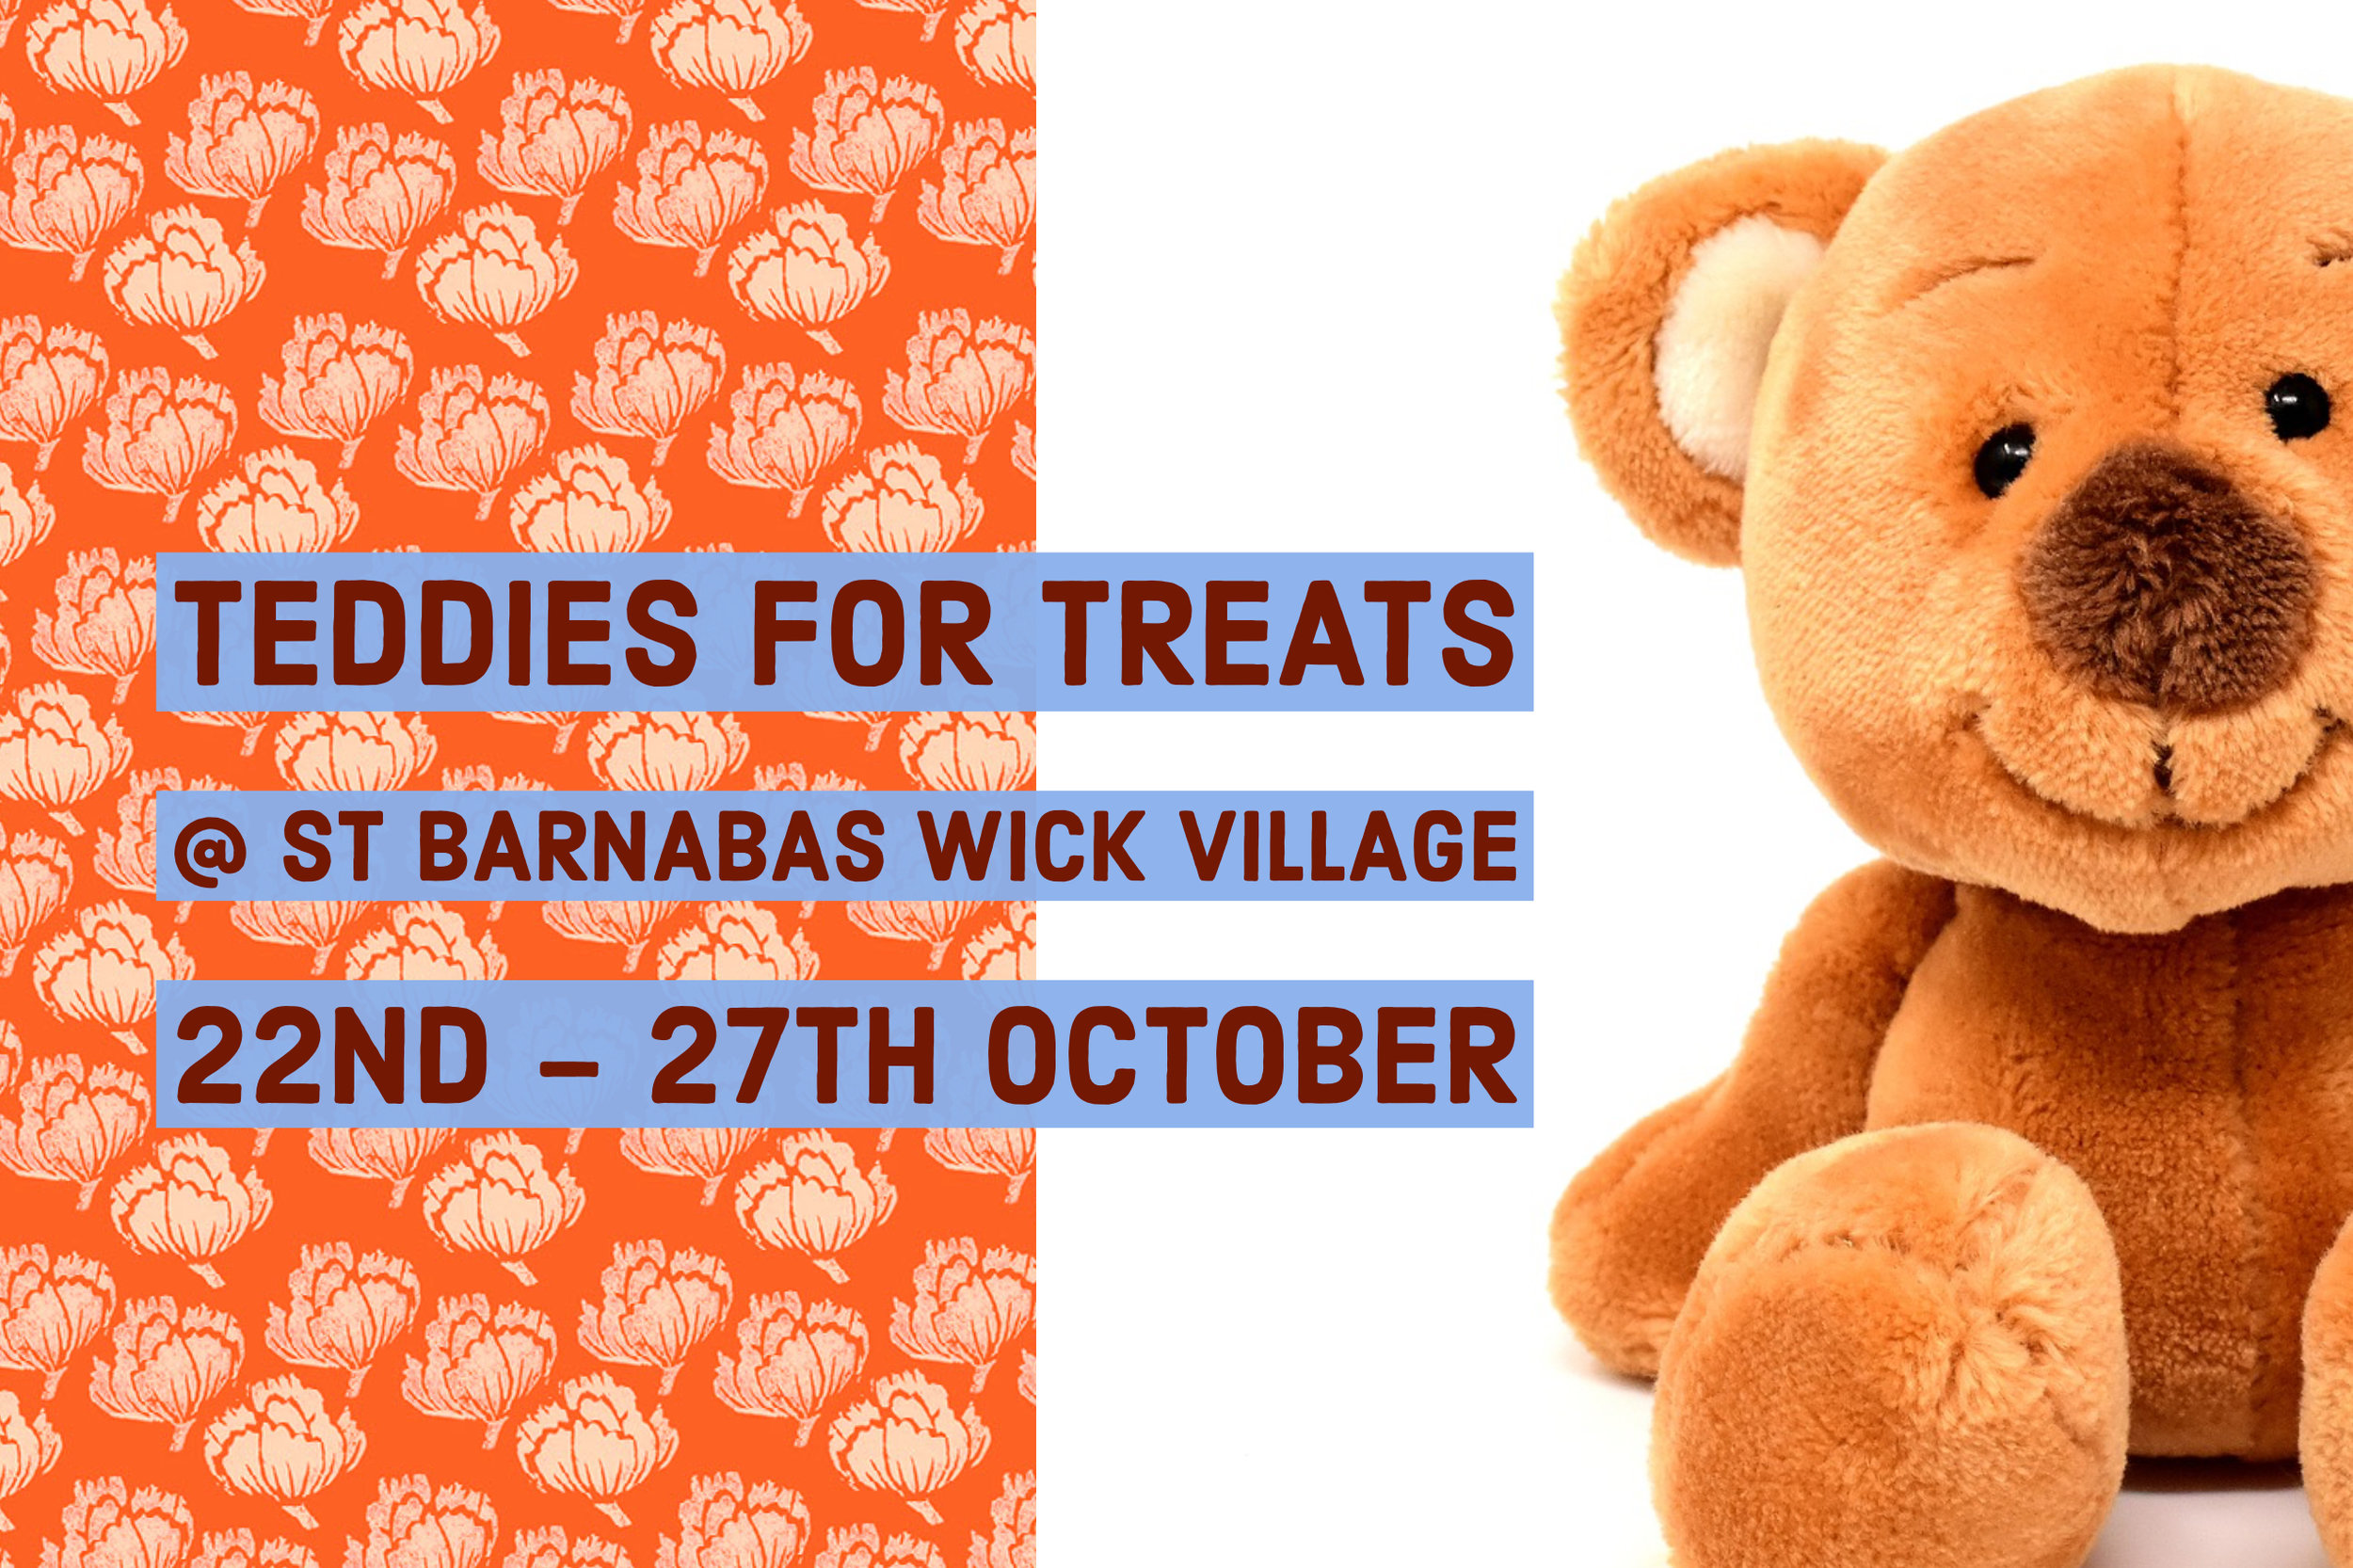 The Teddies For Treats event at St Barnabas House Charity Shop in Wick Village, Littlehampton.